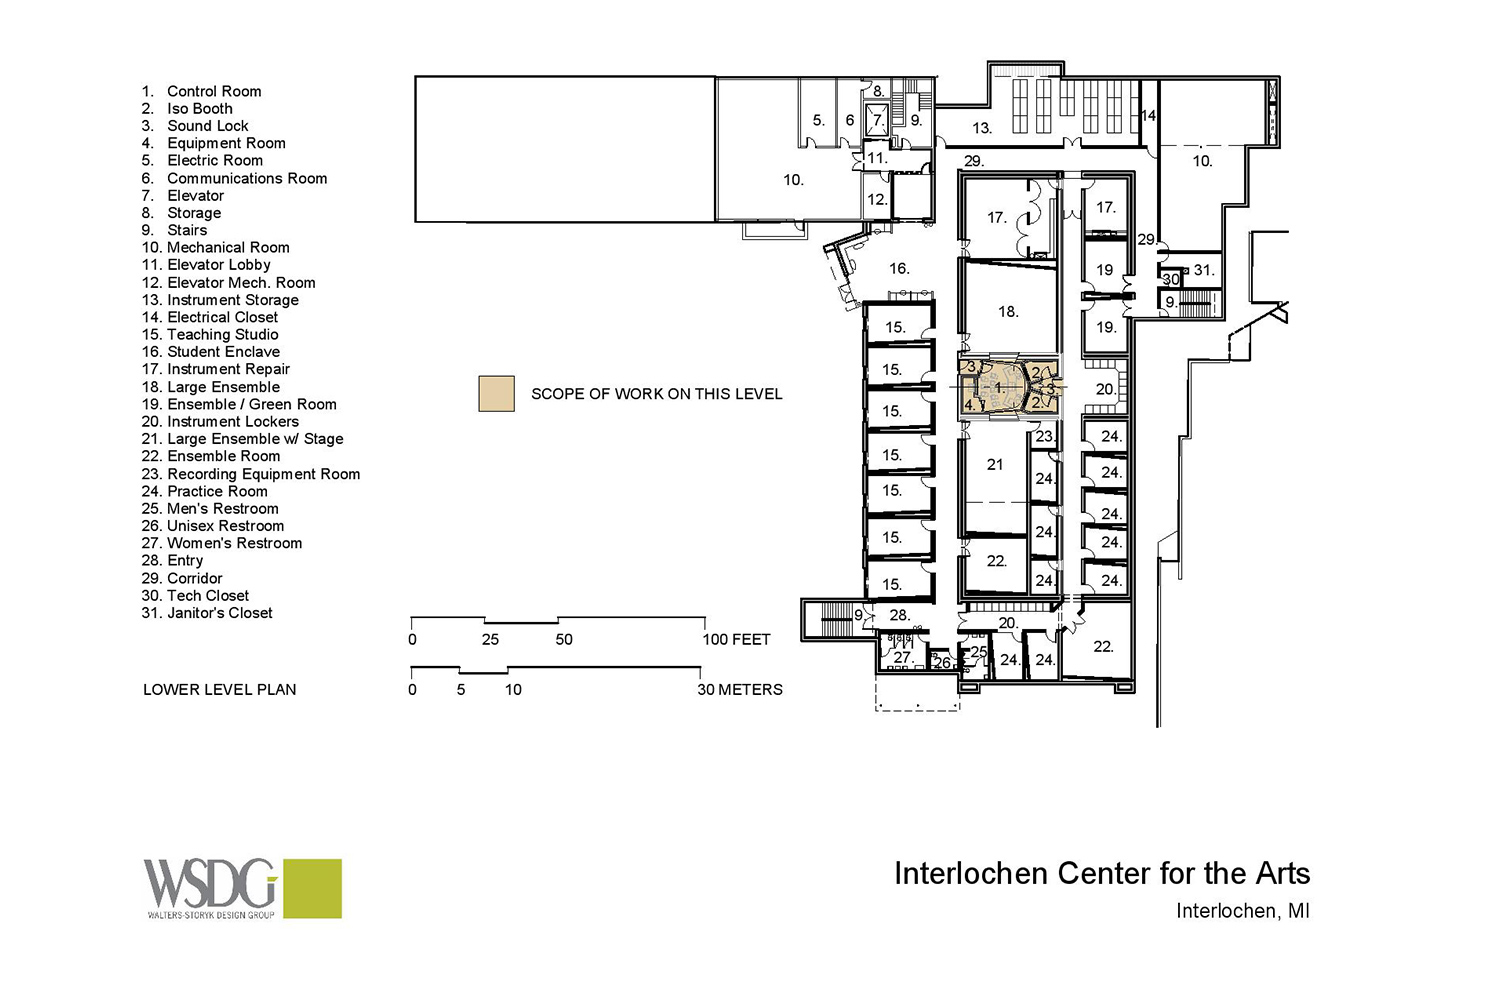 Interlochen has recently completed their new complex. A key component of the new complex is a state-of-the-art recording/teaching studio complex developed by WSDG. Presentation drawing 6.